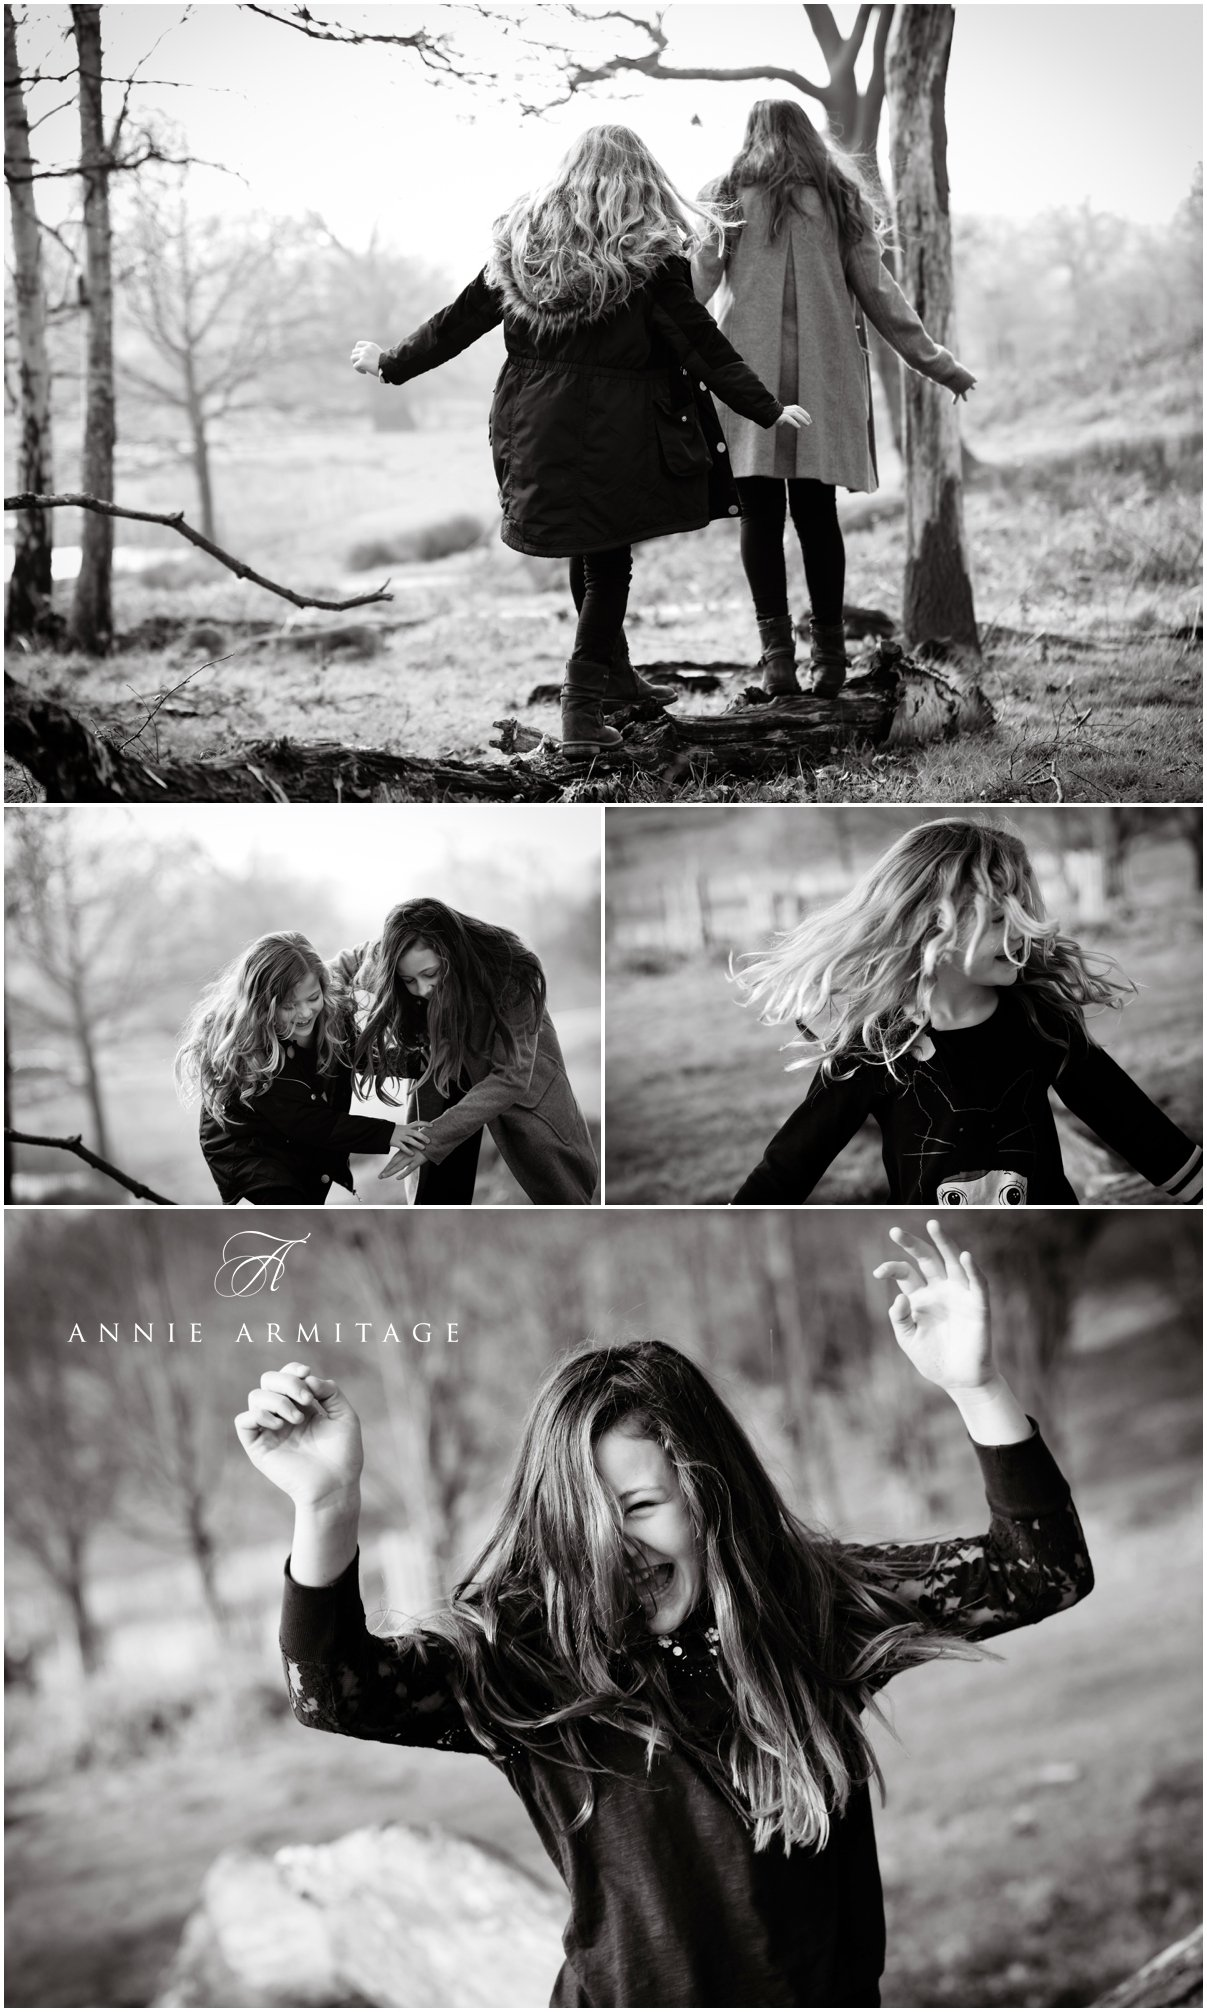 two teenage sisters playing in the park by balancing on a log and laughing together the images are in black and white